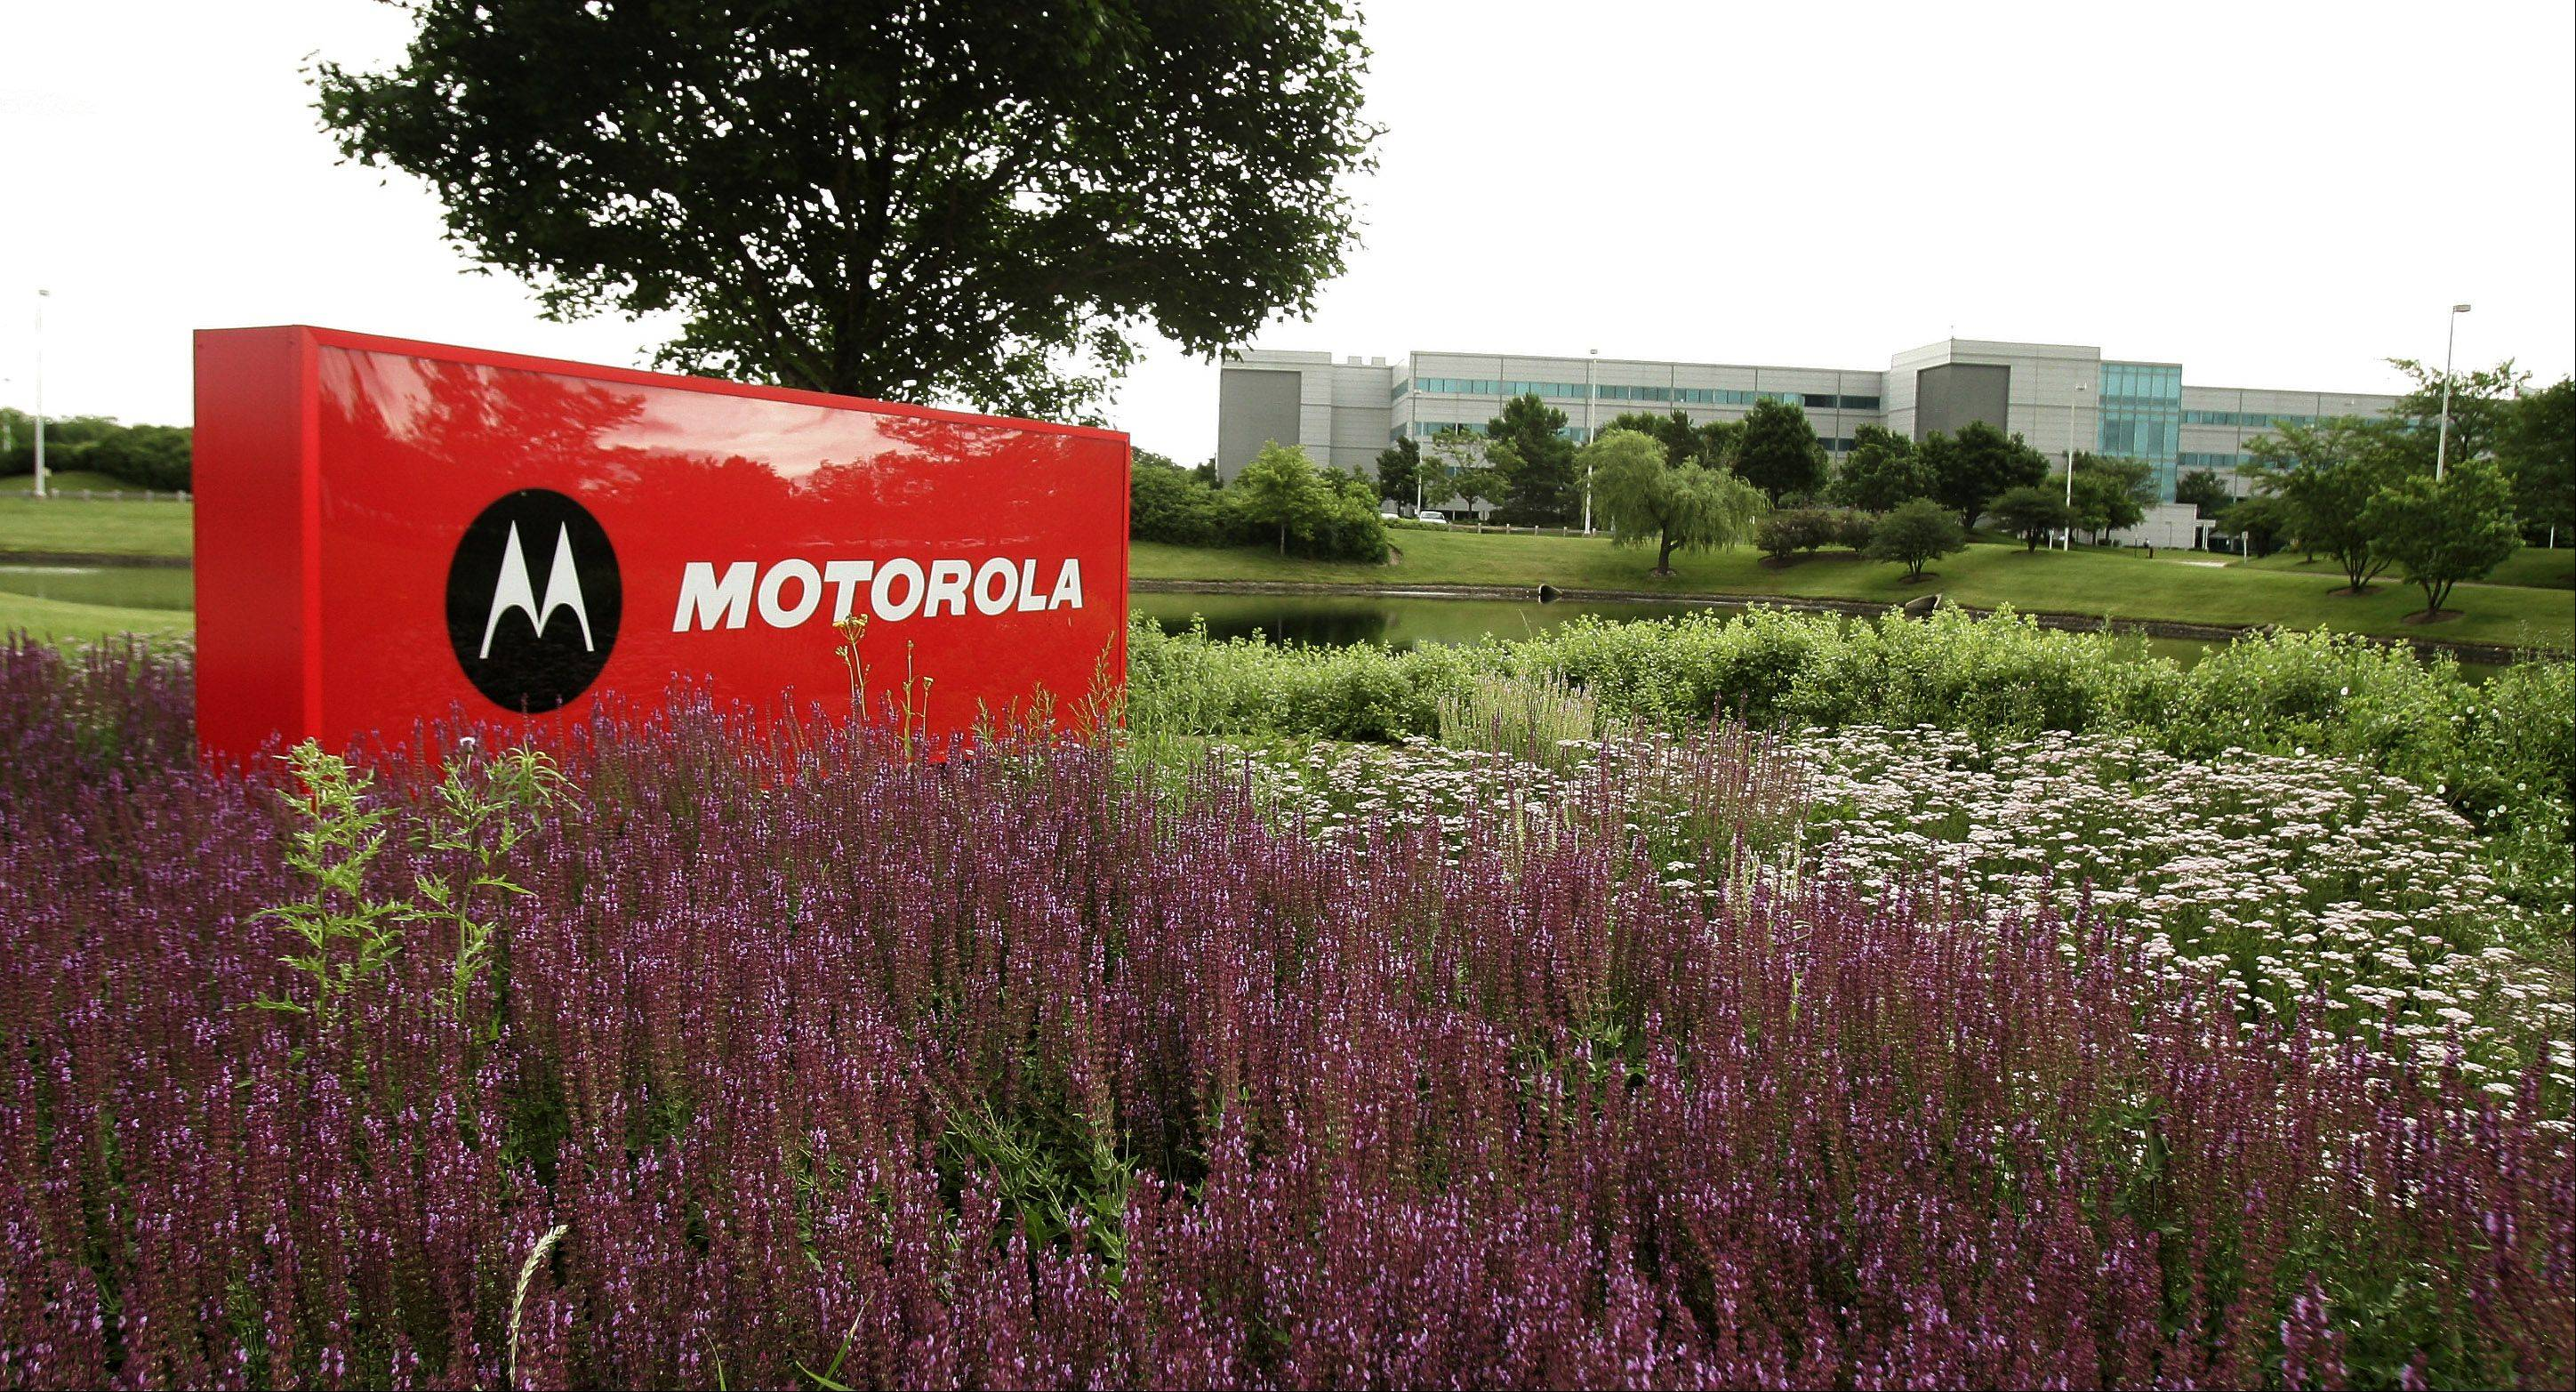 Officials expect Google to keep Motorola Mobility's Libertyville site